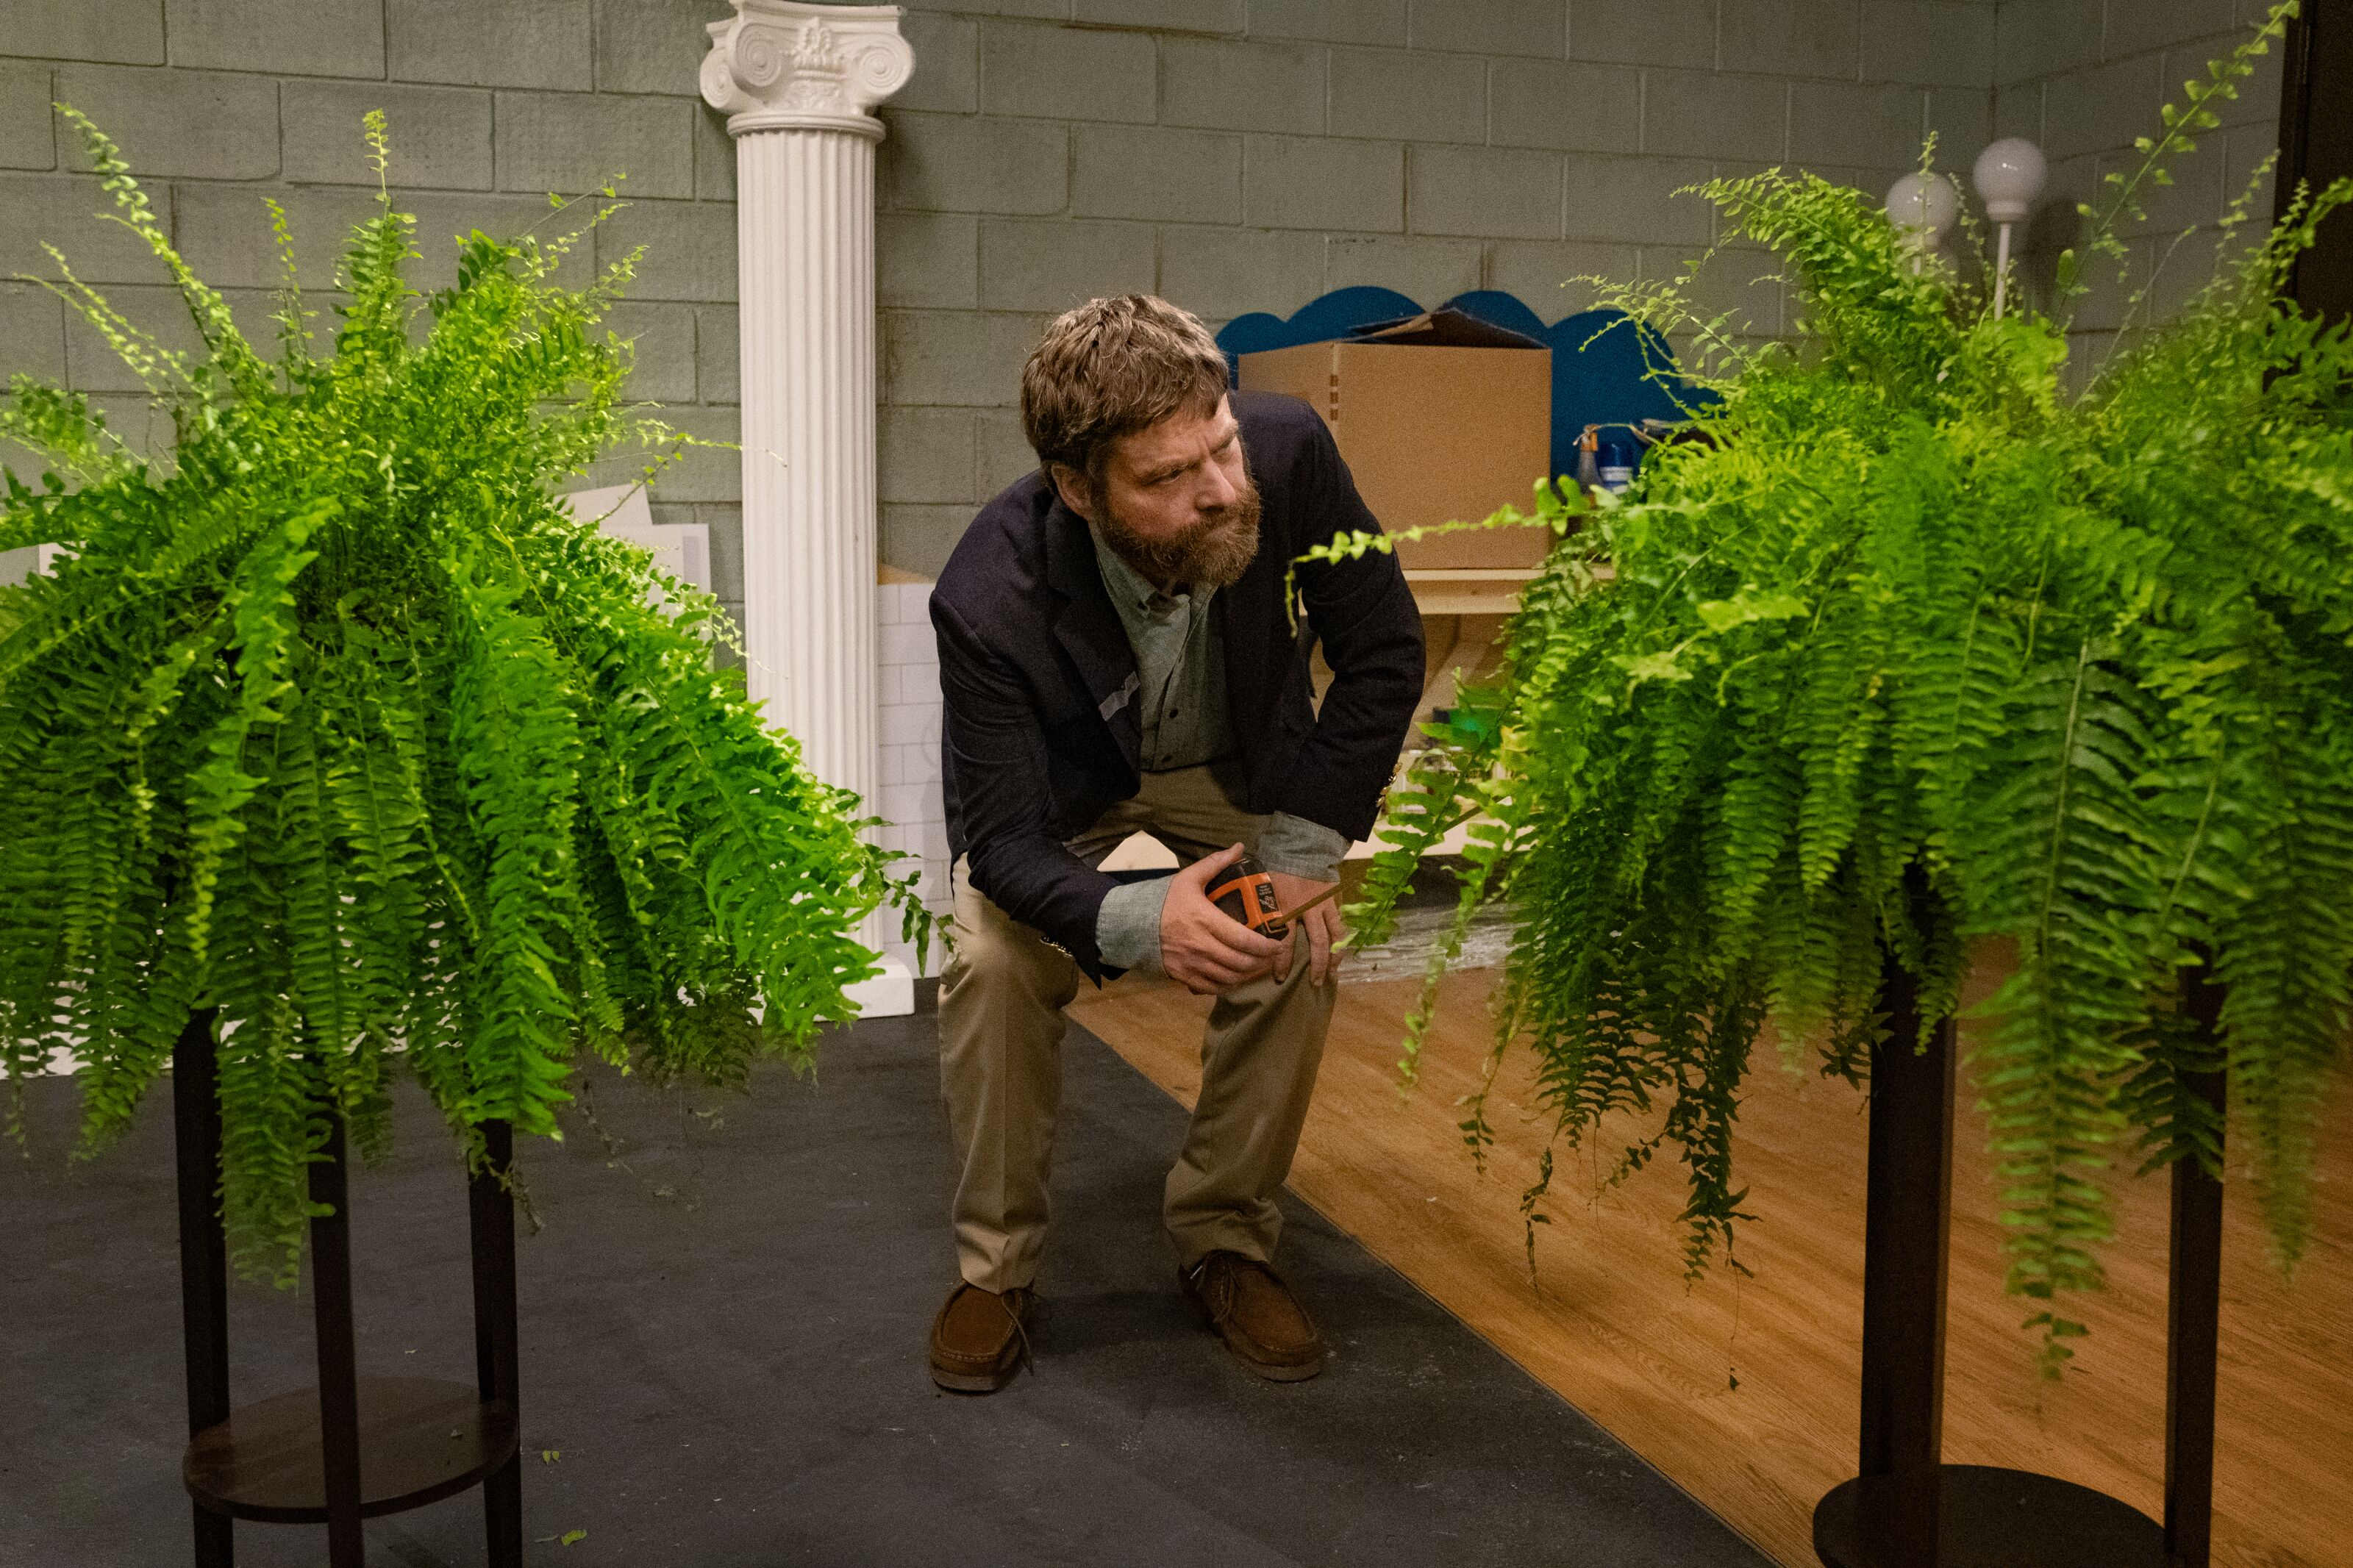 Between Two Ferns: The Movie is Netflix's next must-watch comedy